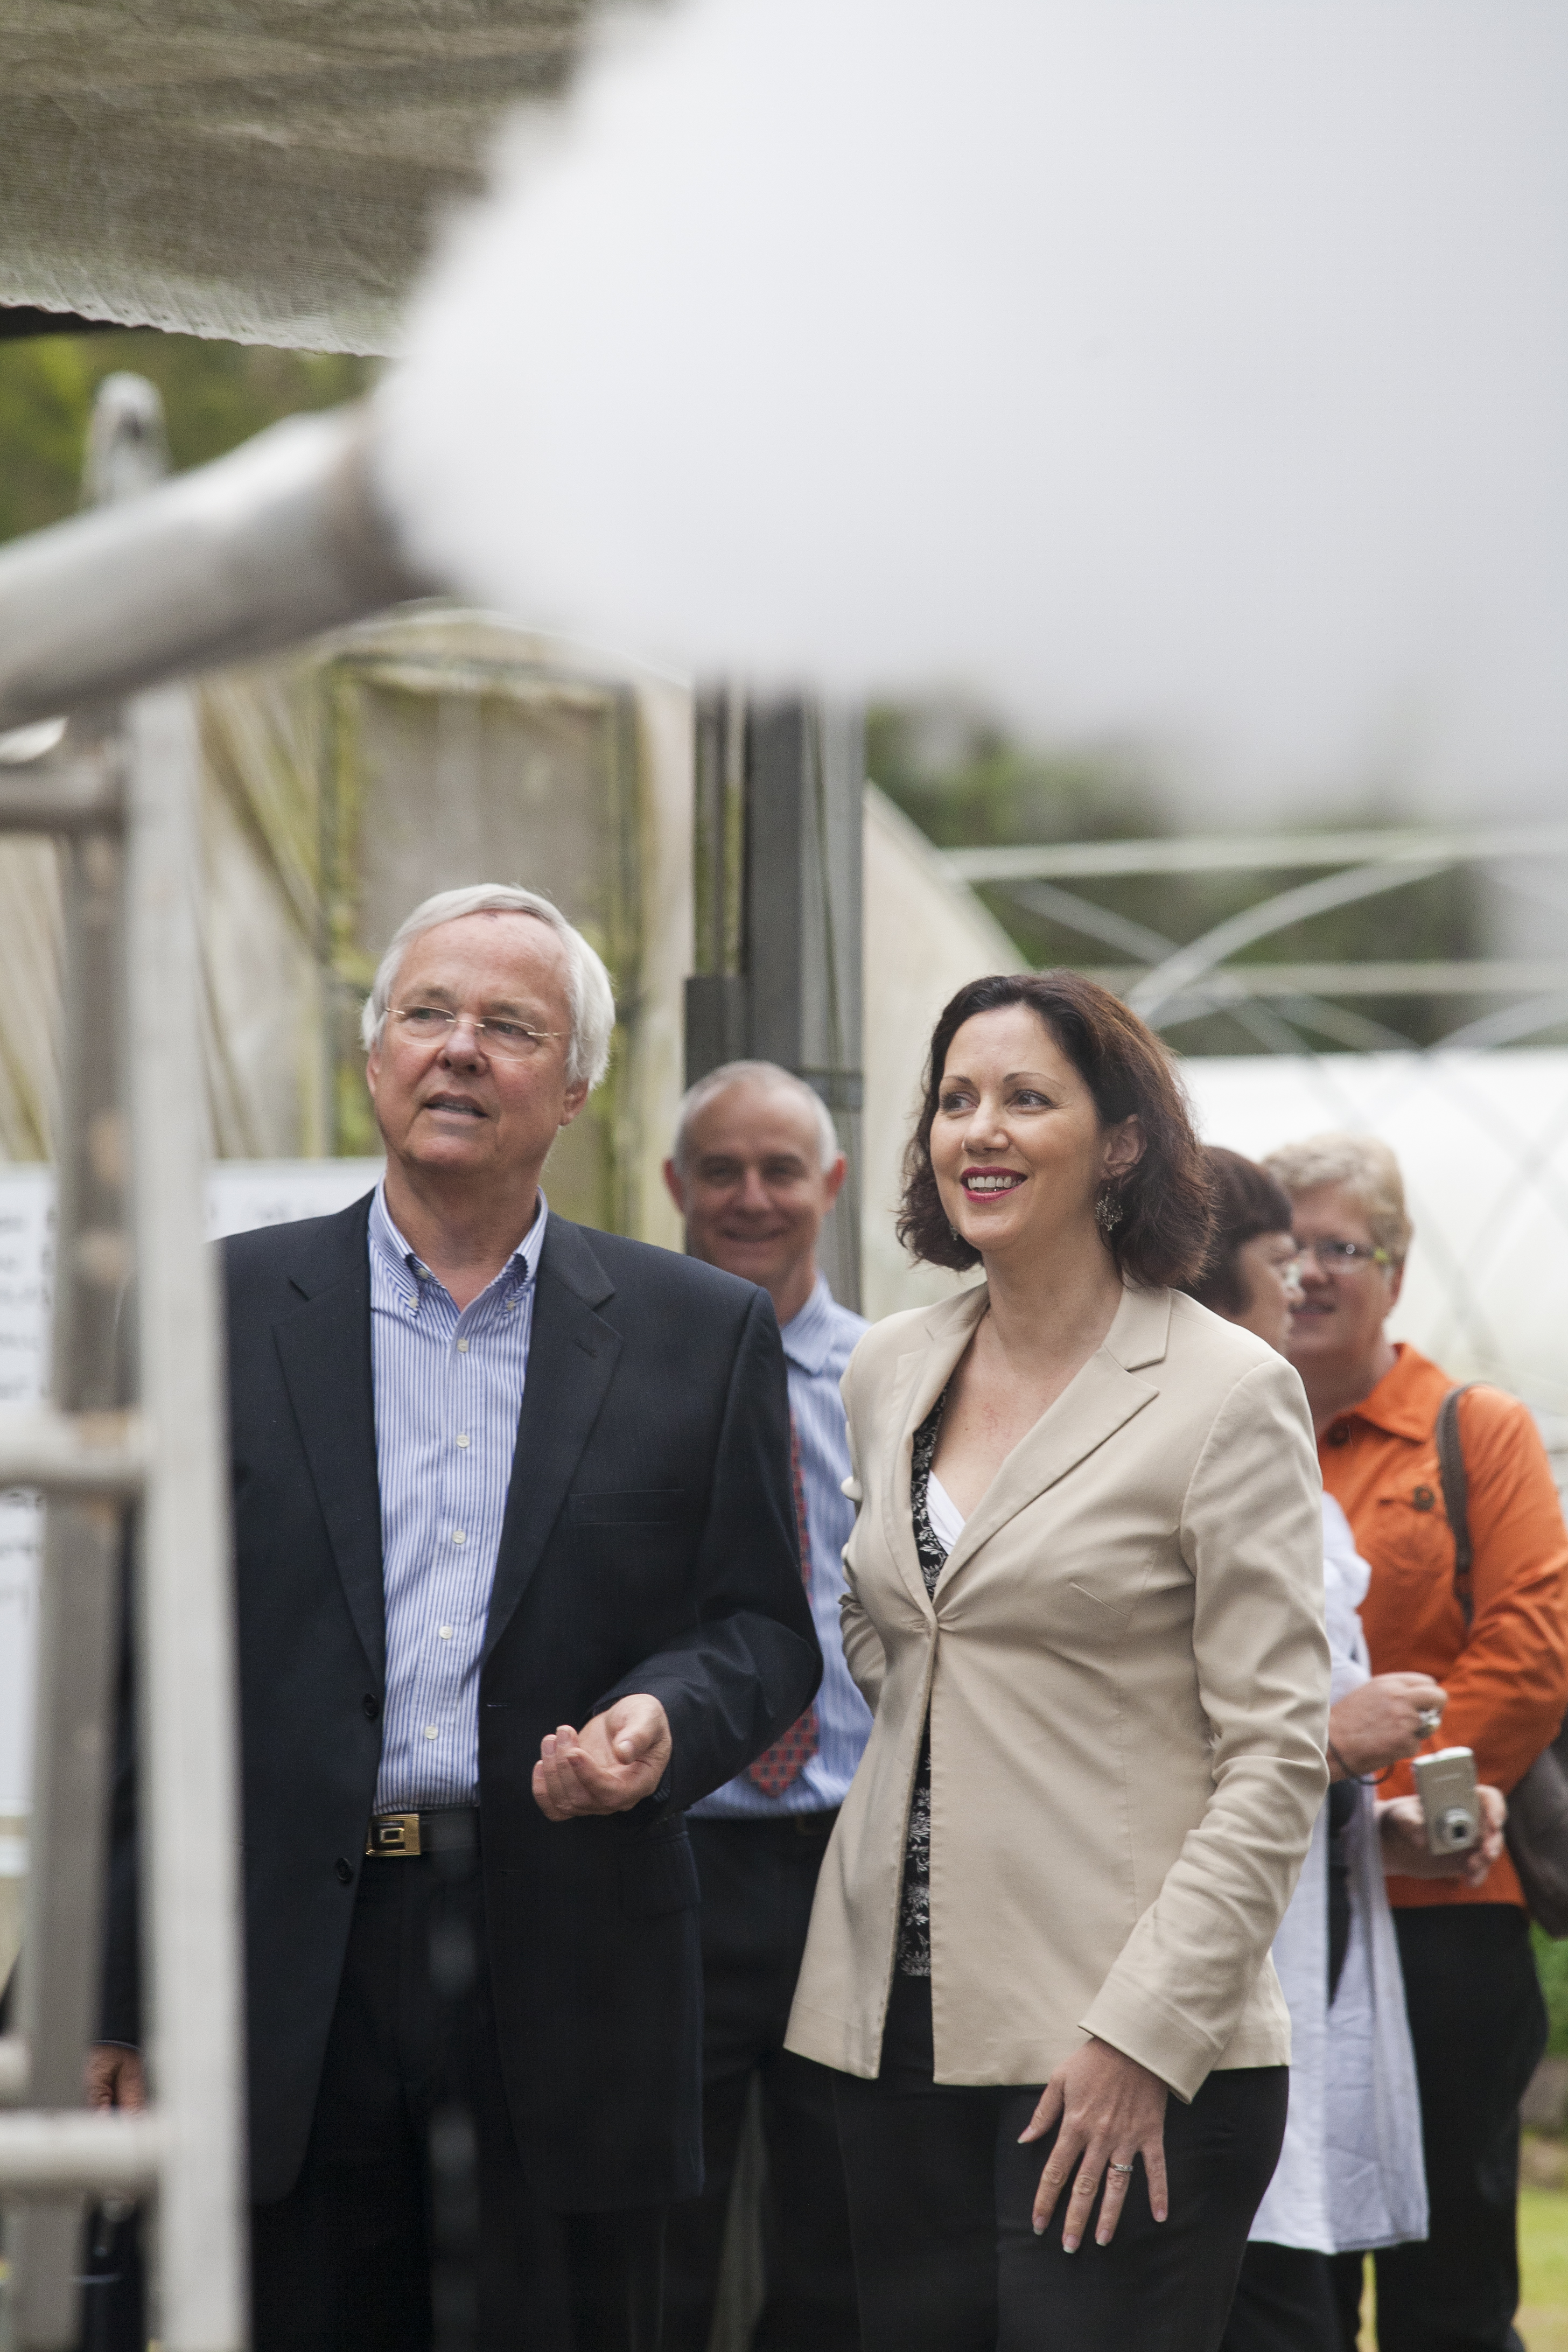 Matthew Fox and Minister for the Environment Mrs Vicky Darling